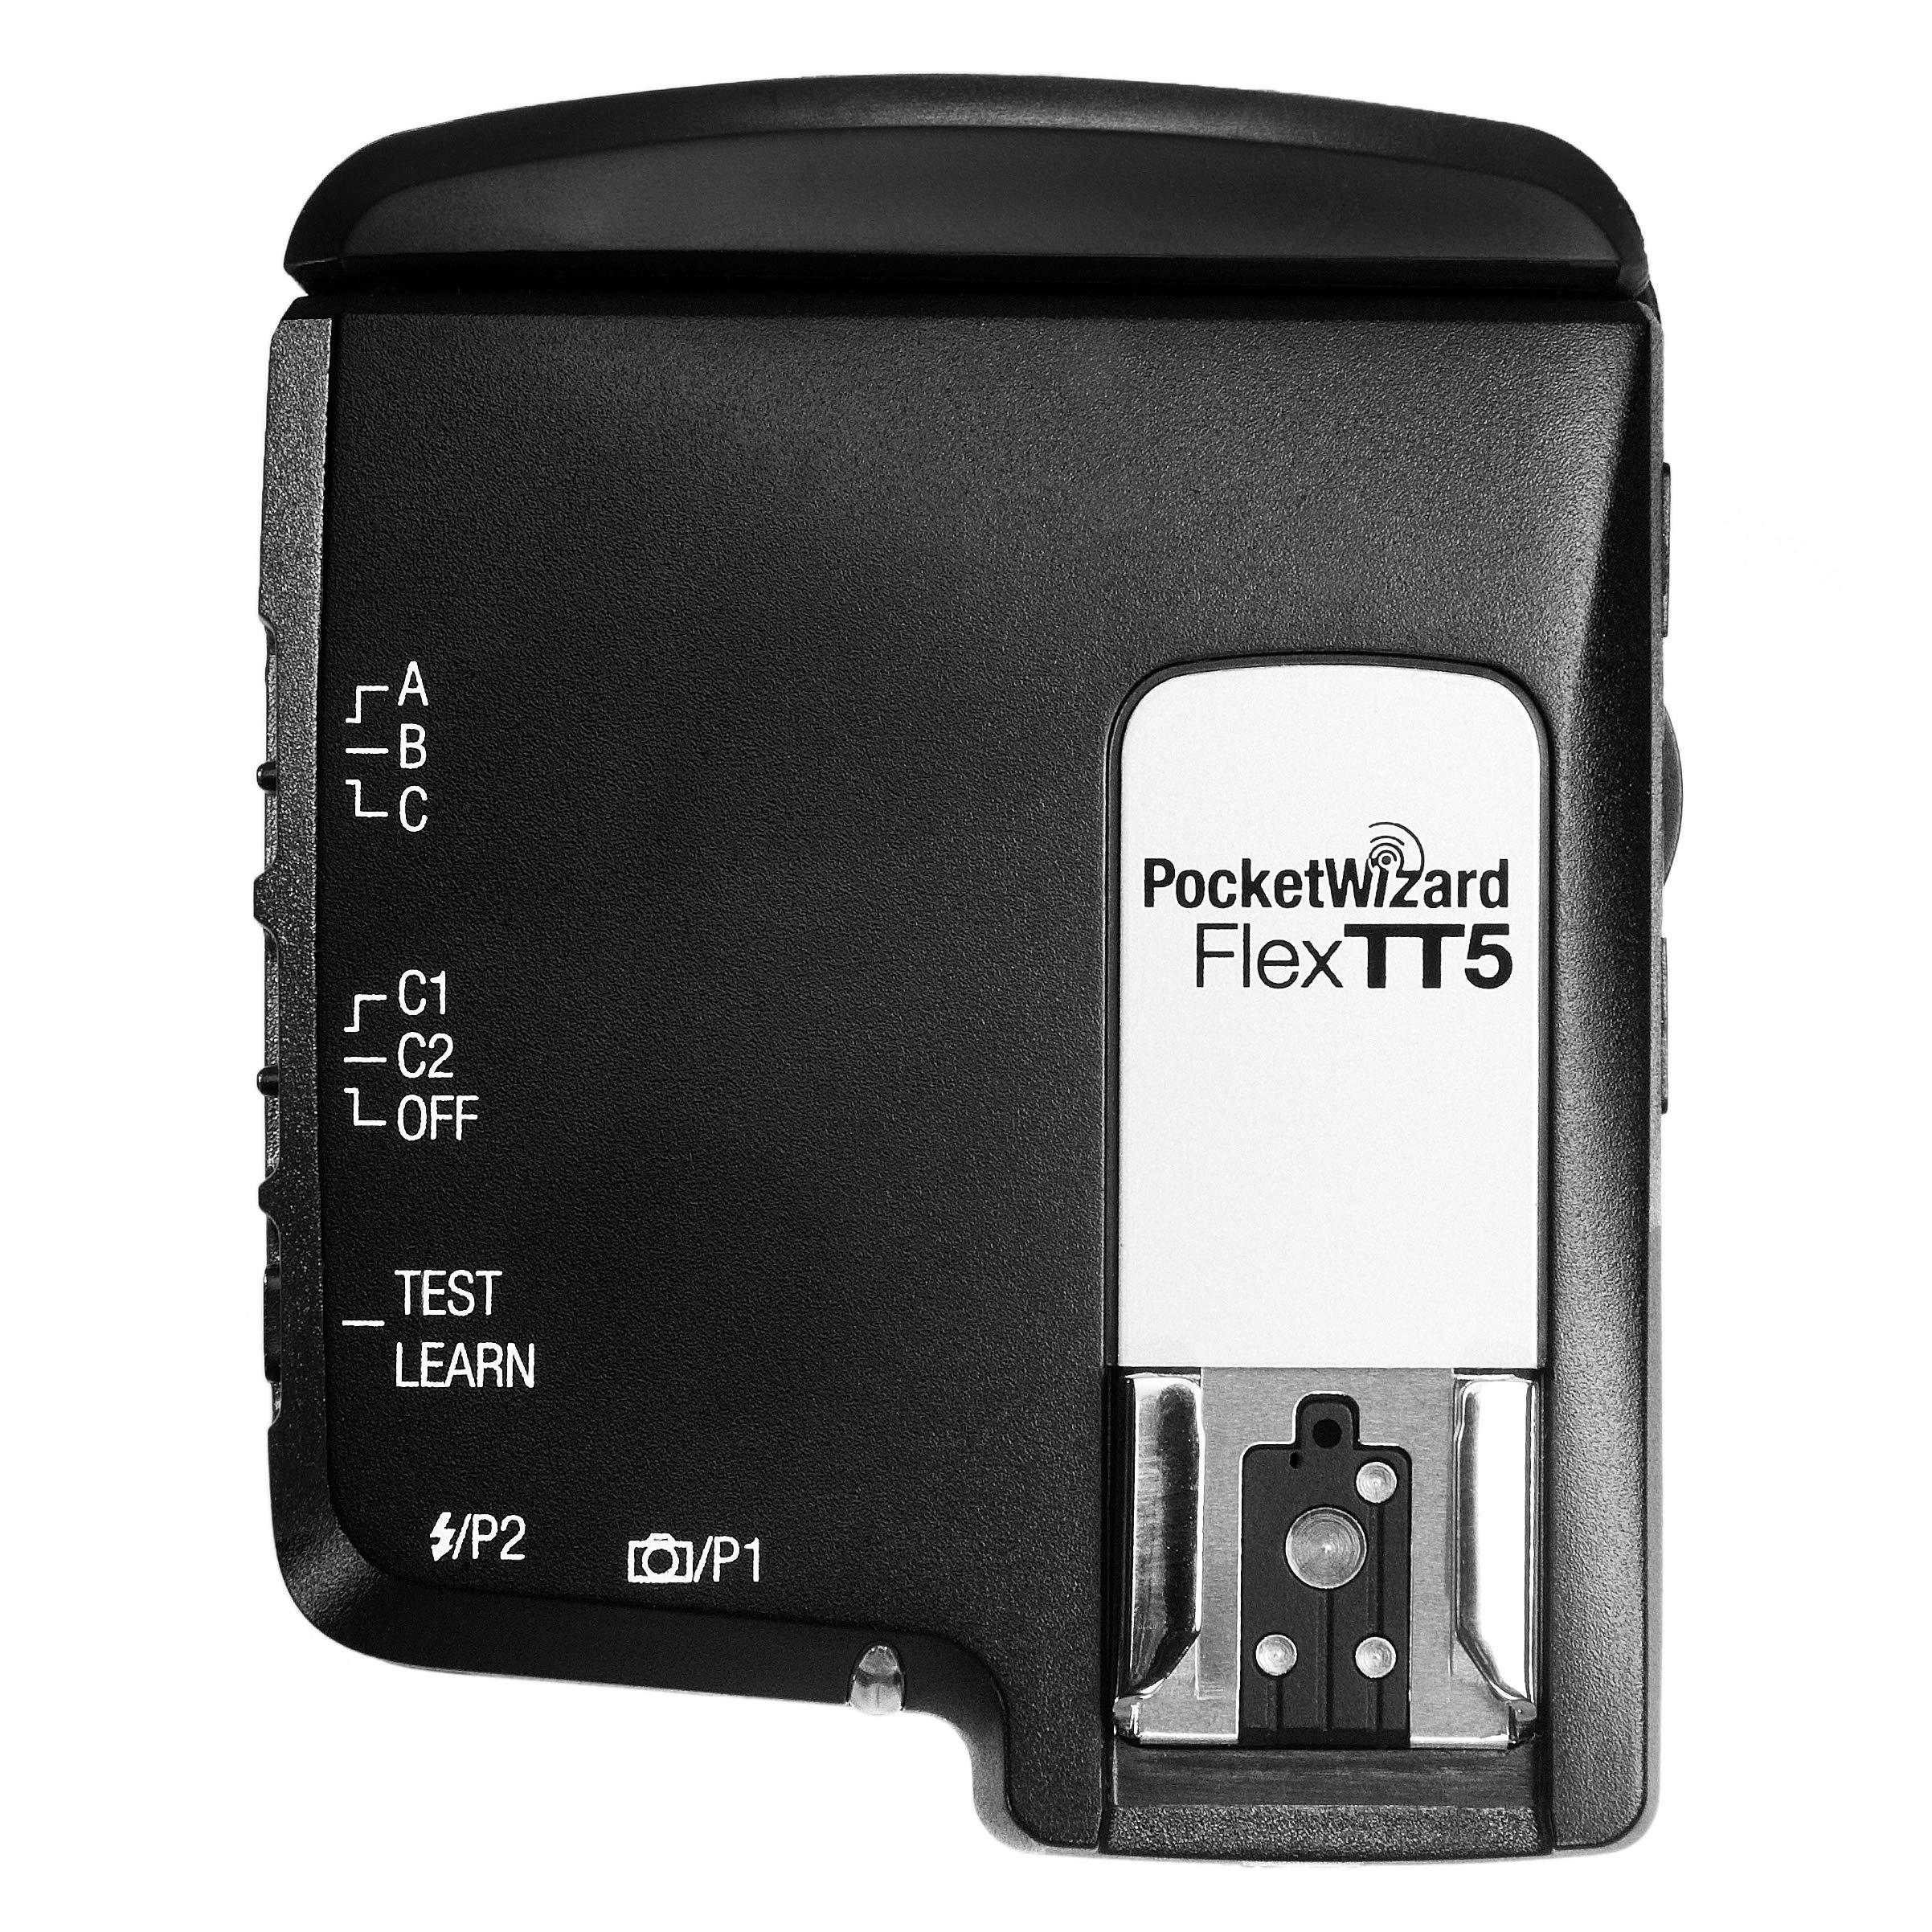 PocketWizard FlexTT5 Transceiver Replacement Hot Shoe Foot Module for Nikon Camera